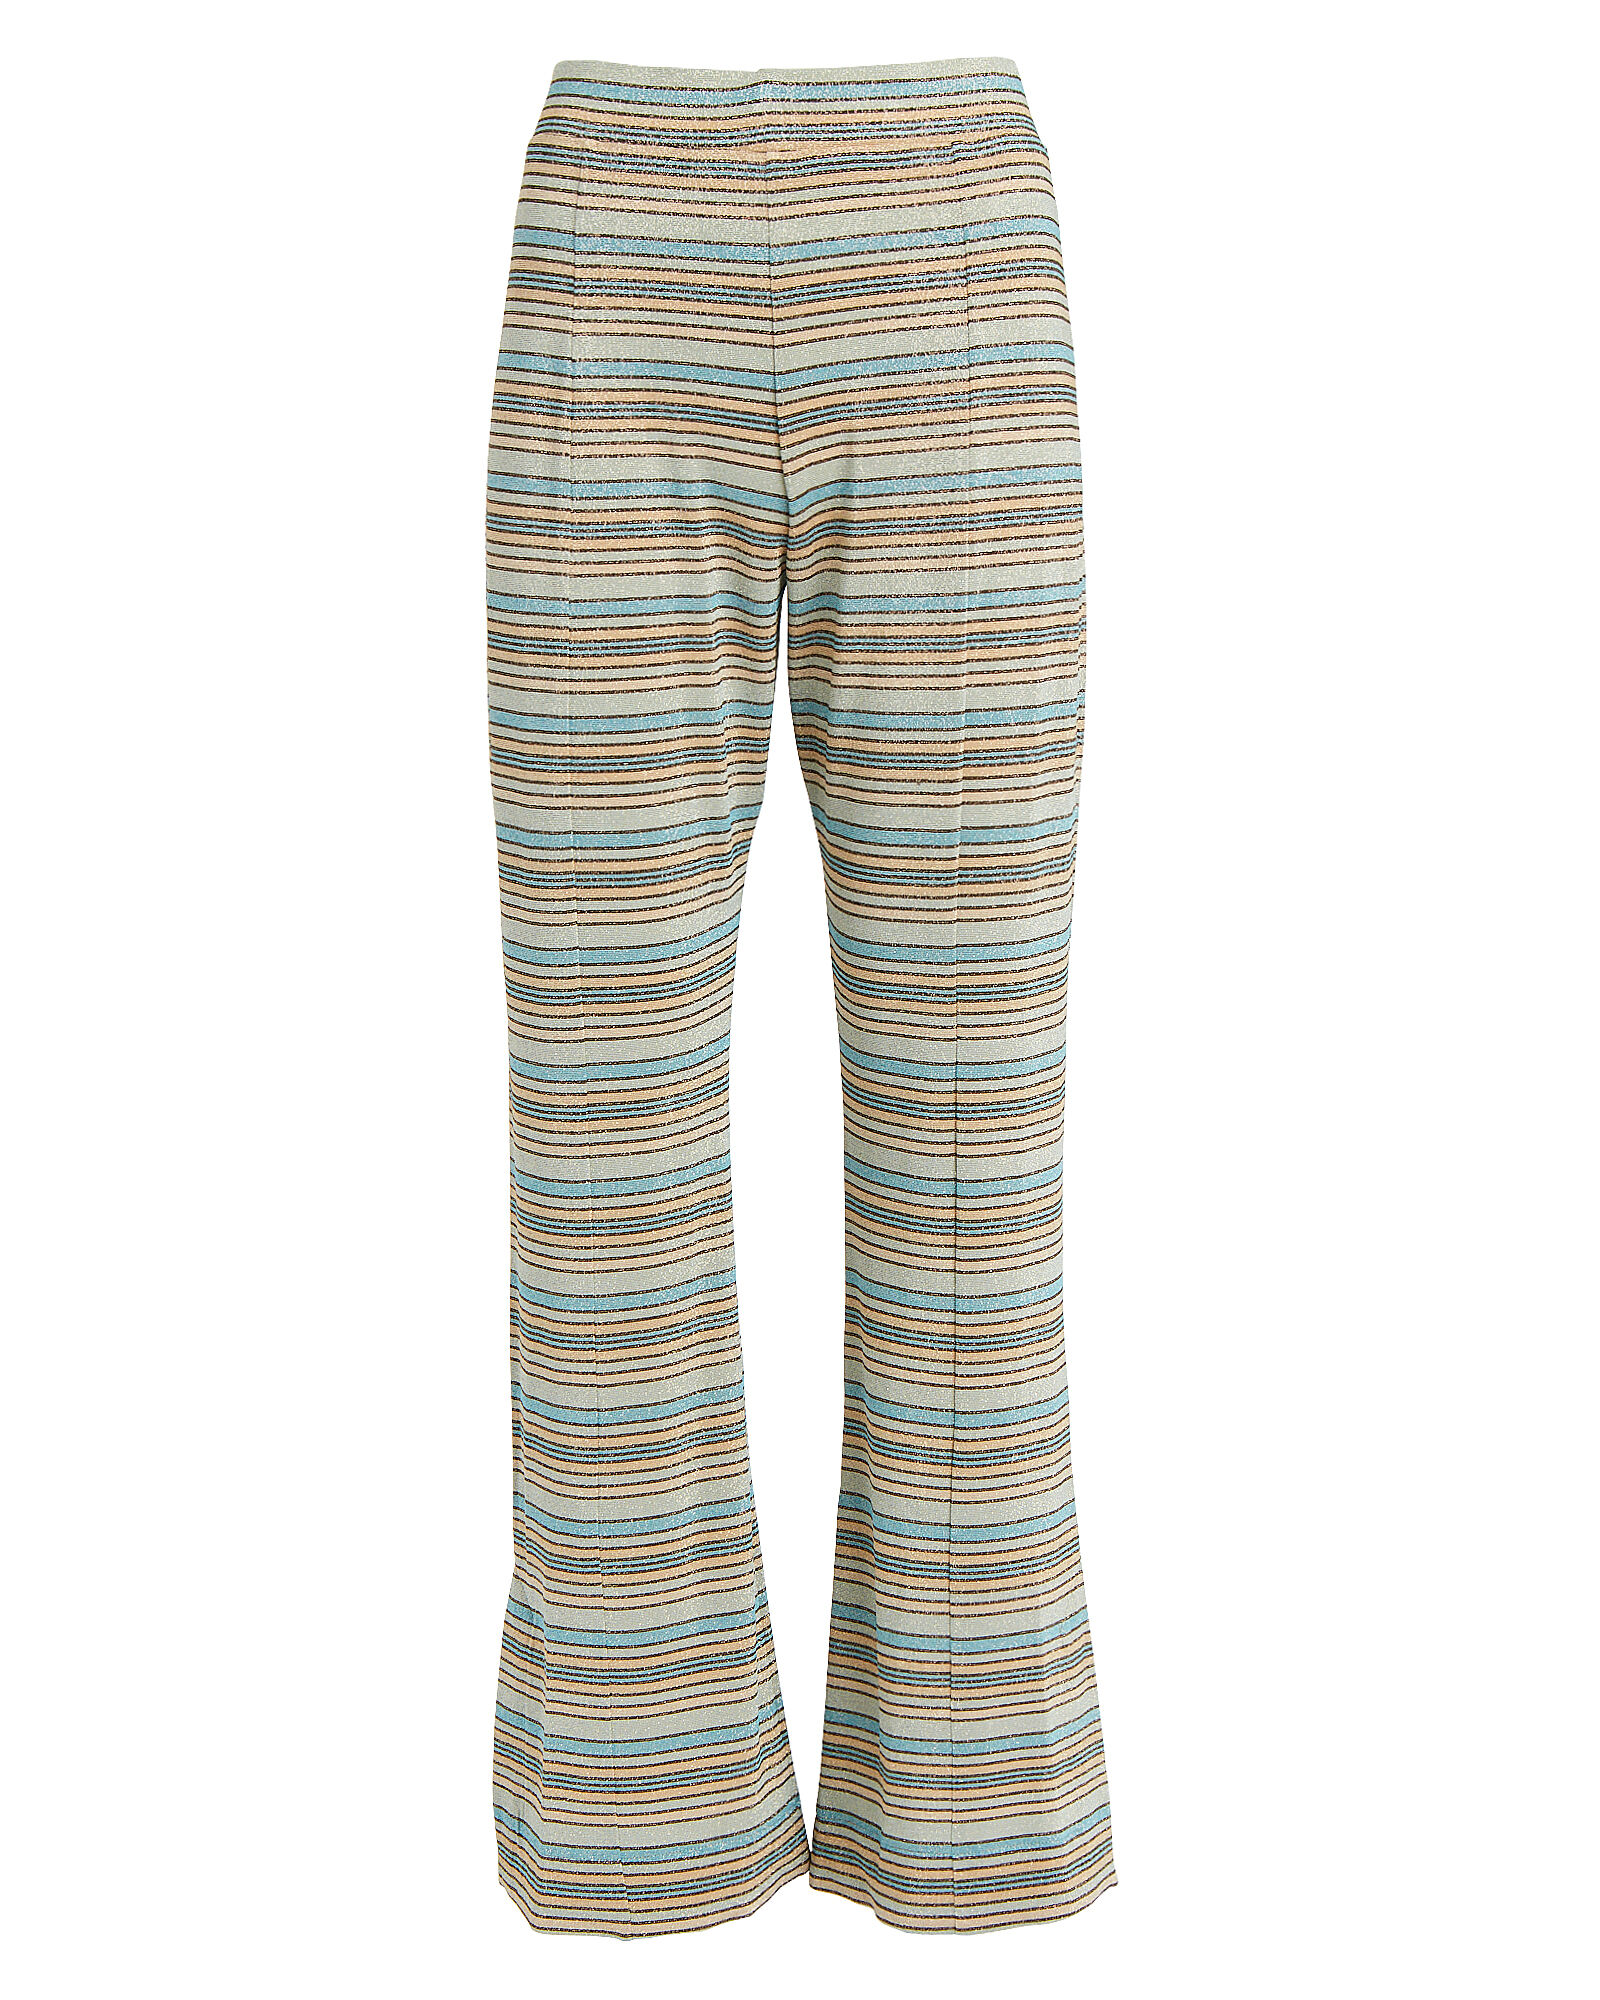 Melanie Flared Striped Lurex Pants, BLUE STRIPE, hi-res